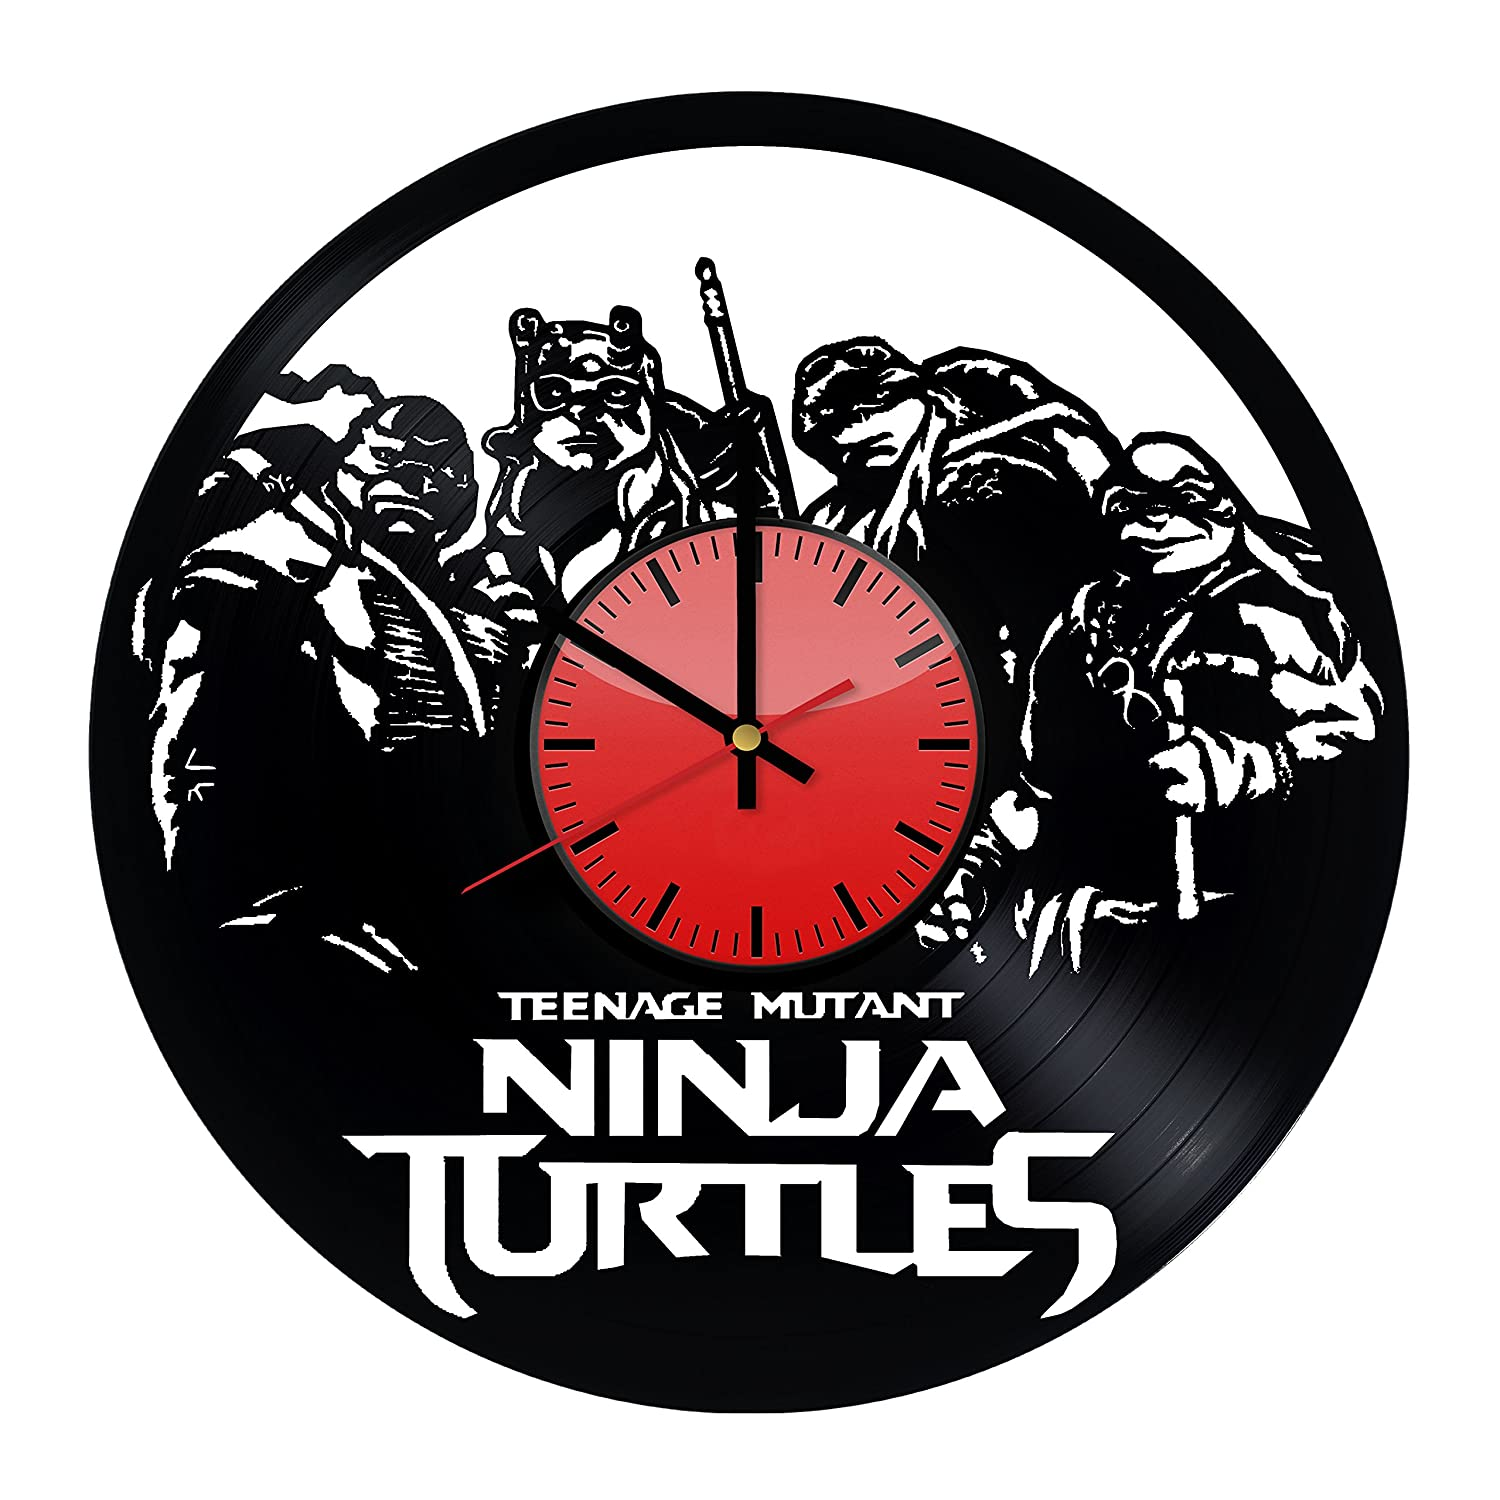 Amazon.com: Teenage Mutant Ninja Turtles Comic Book Series ...